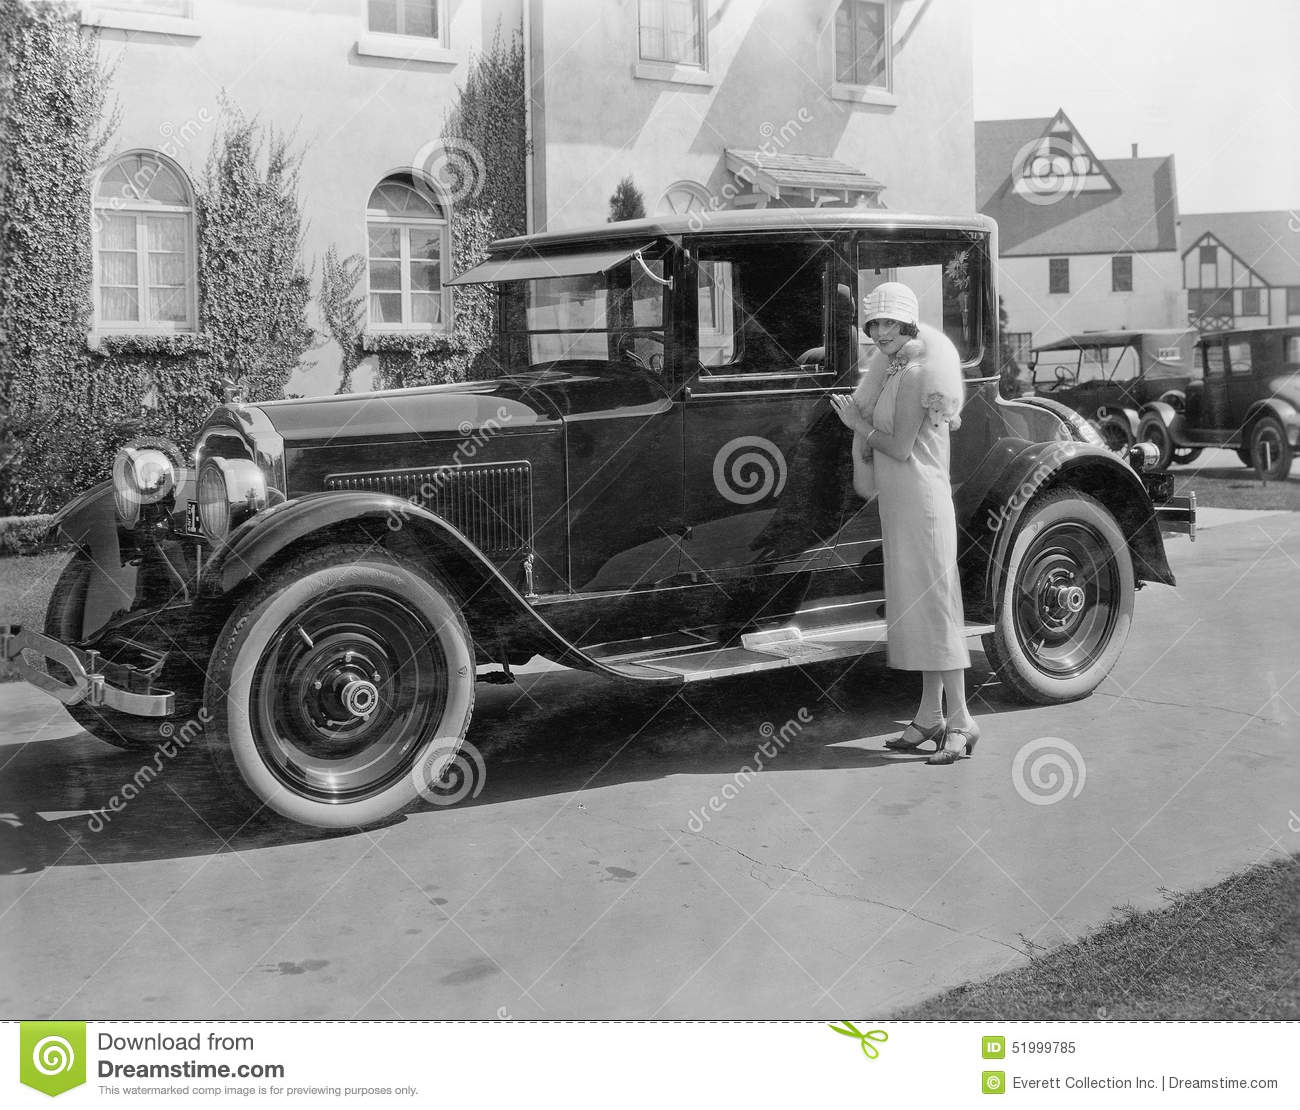 Woman With Antique Car Outside Large House Stock Photo - Image: 51999785